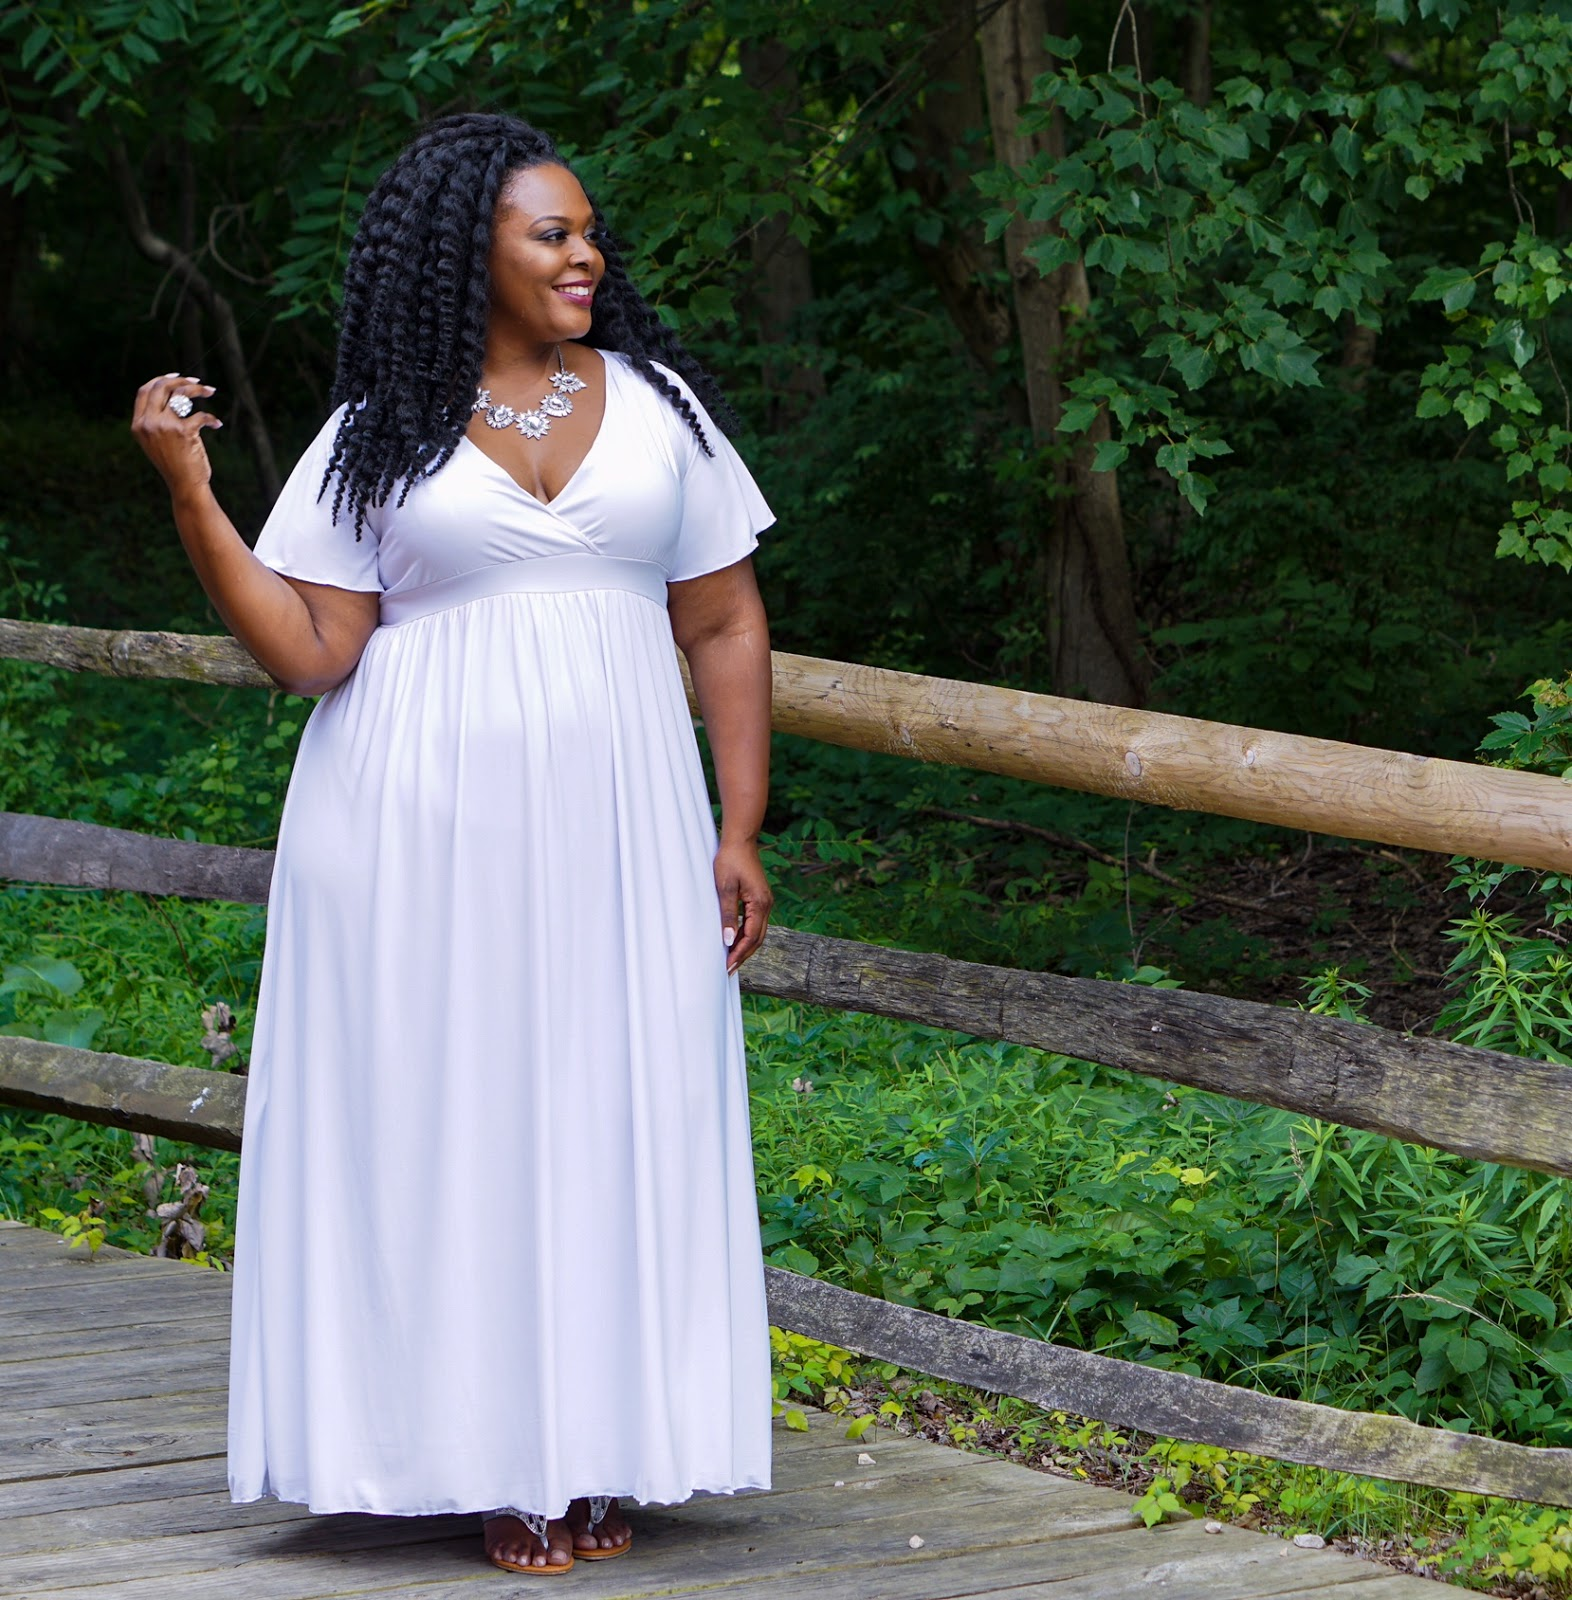 swak maxi dress, swak designs maxi dress, white plus size dress, white maxidress, white plus size maxidress